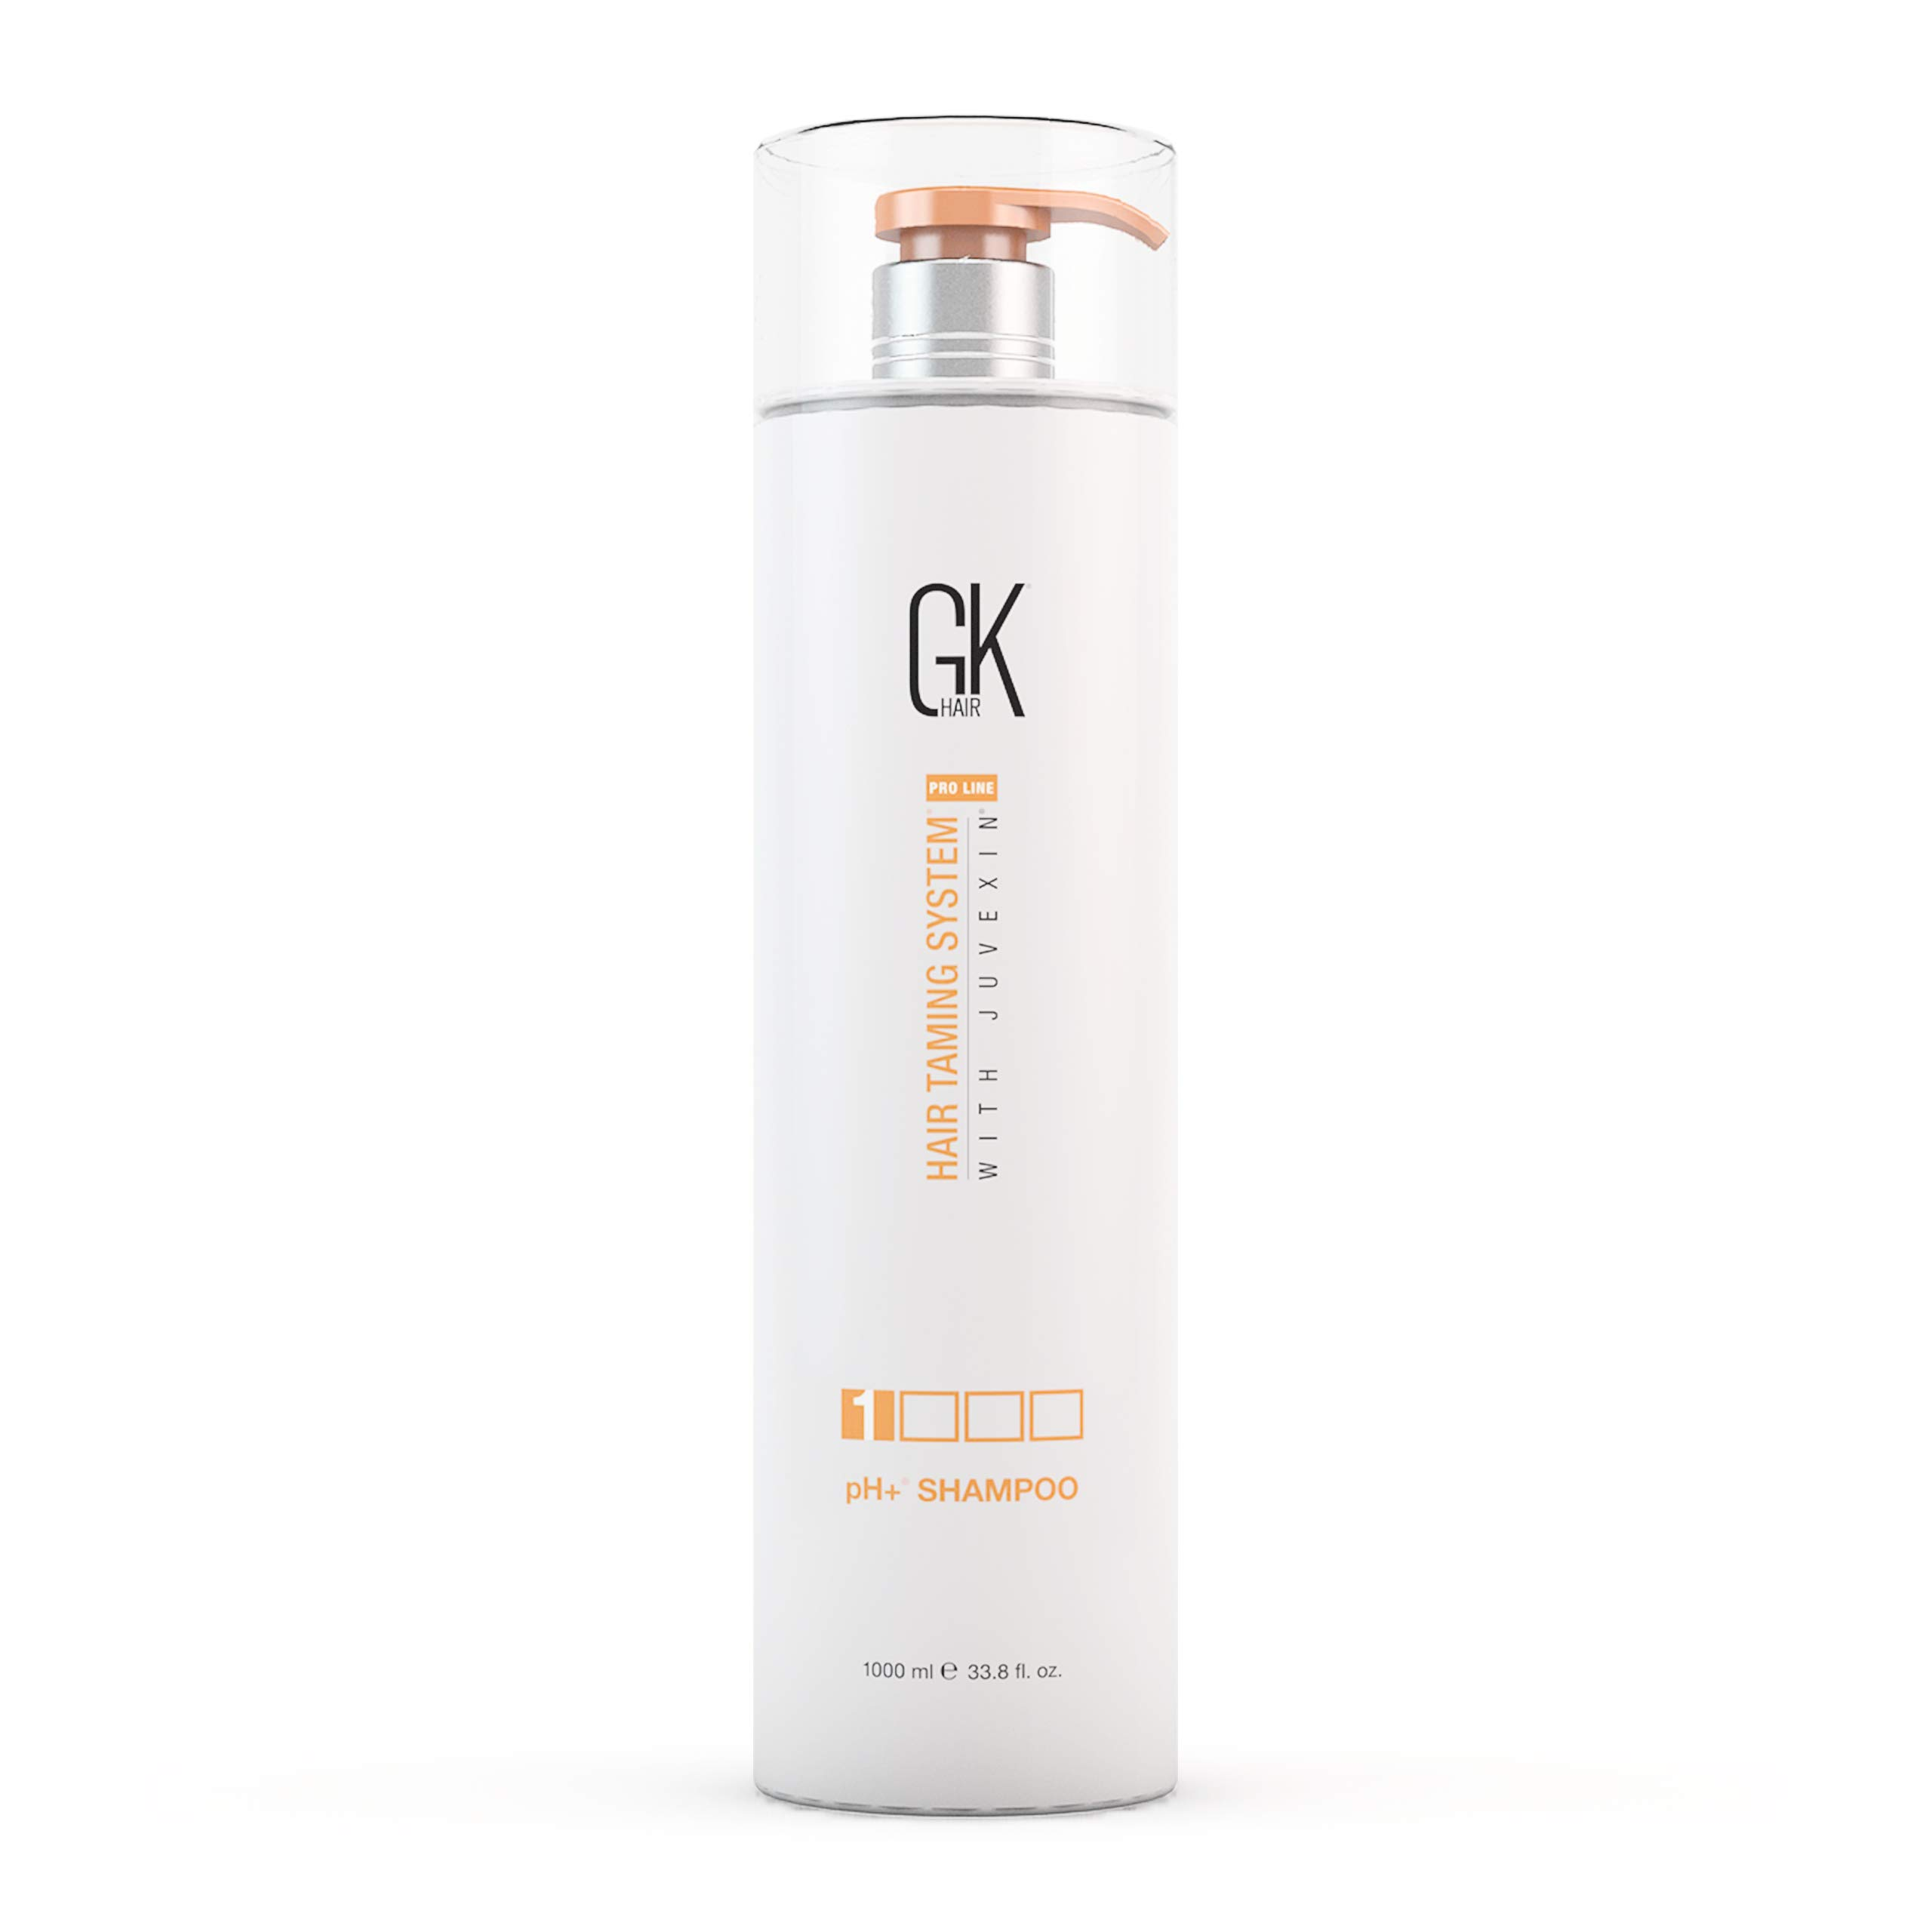 Global Keratin GKhair pH+ Pre-Treatment Clarifying Shampoo (1000ml/ 33.8 fl. oz) | For Deep Cleansing, Removes Impurities - With Aloe Vera, Vitamins and Natural Oils